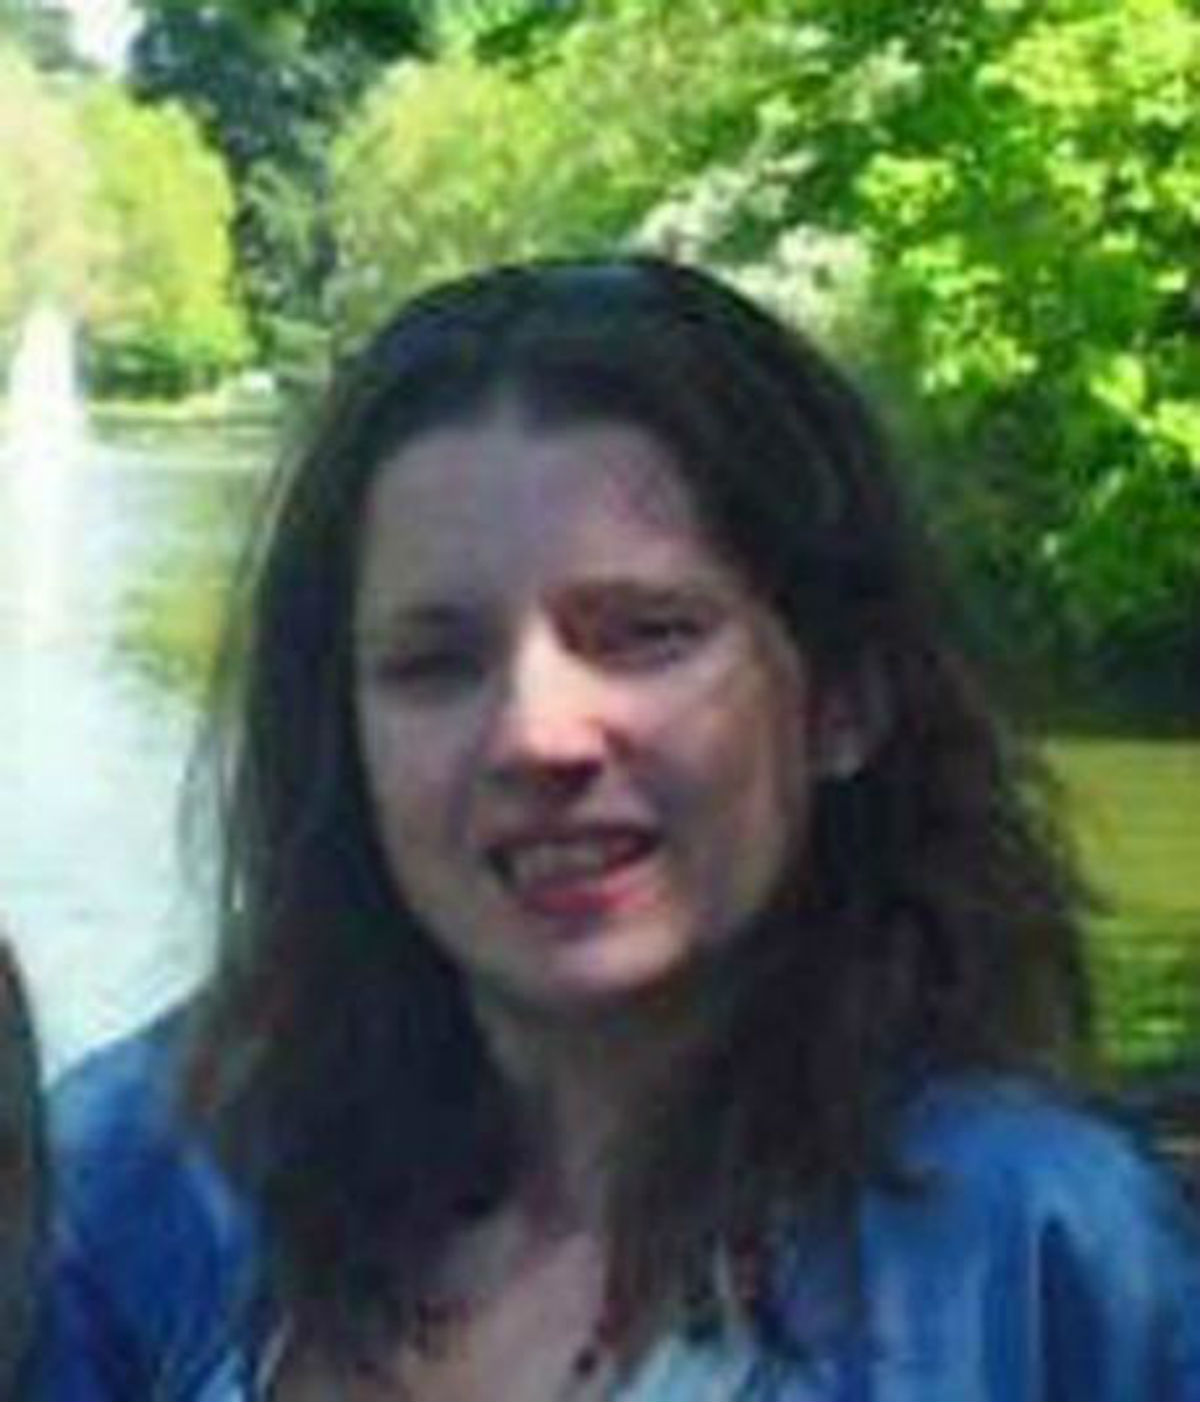 Chantelle Morris, 36, went missing on New Years Day